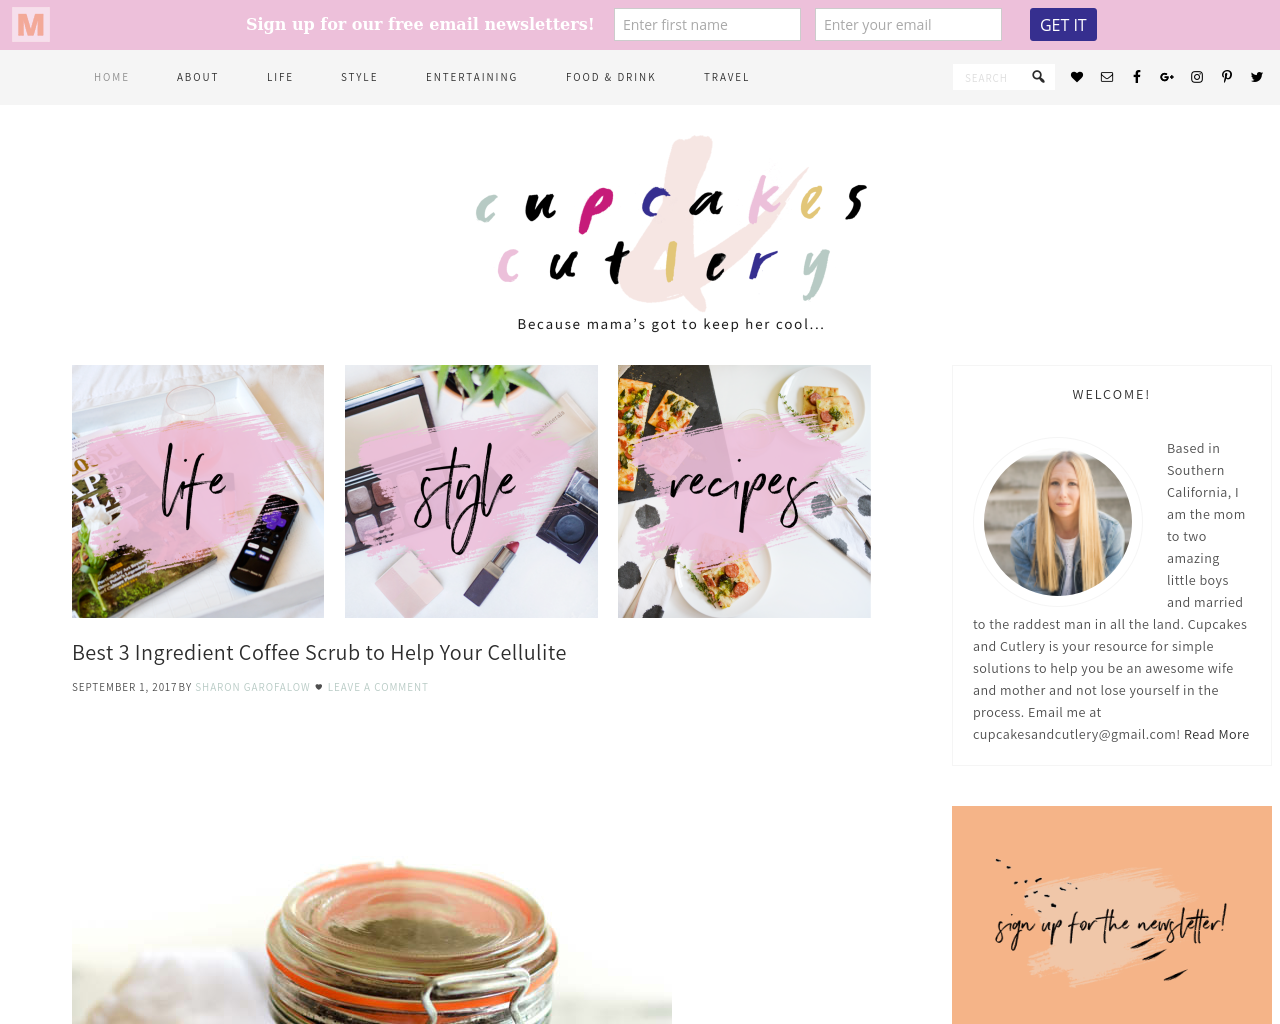 Cupcakes-&-Cultery-Advertising-Reviews-Pricing